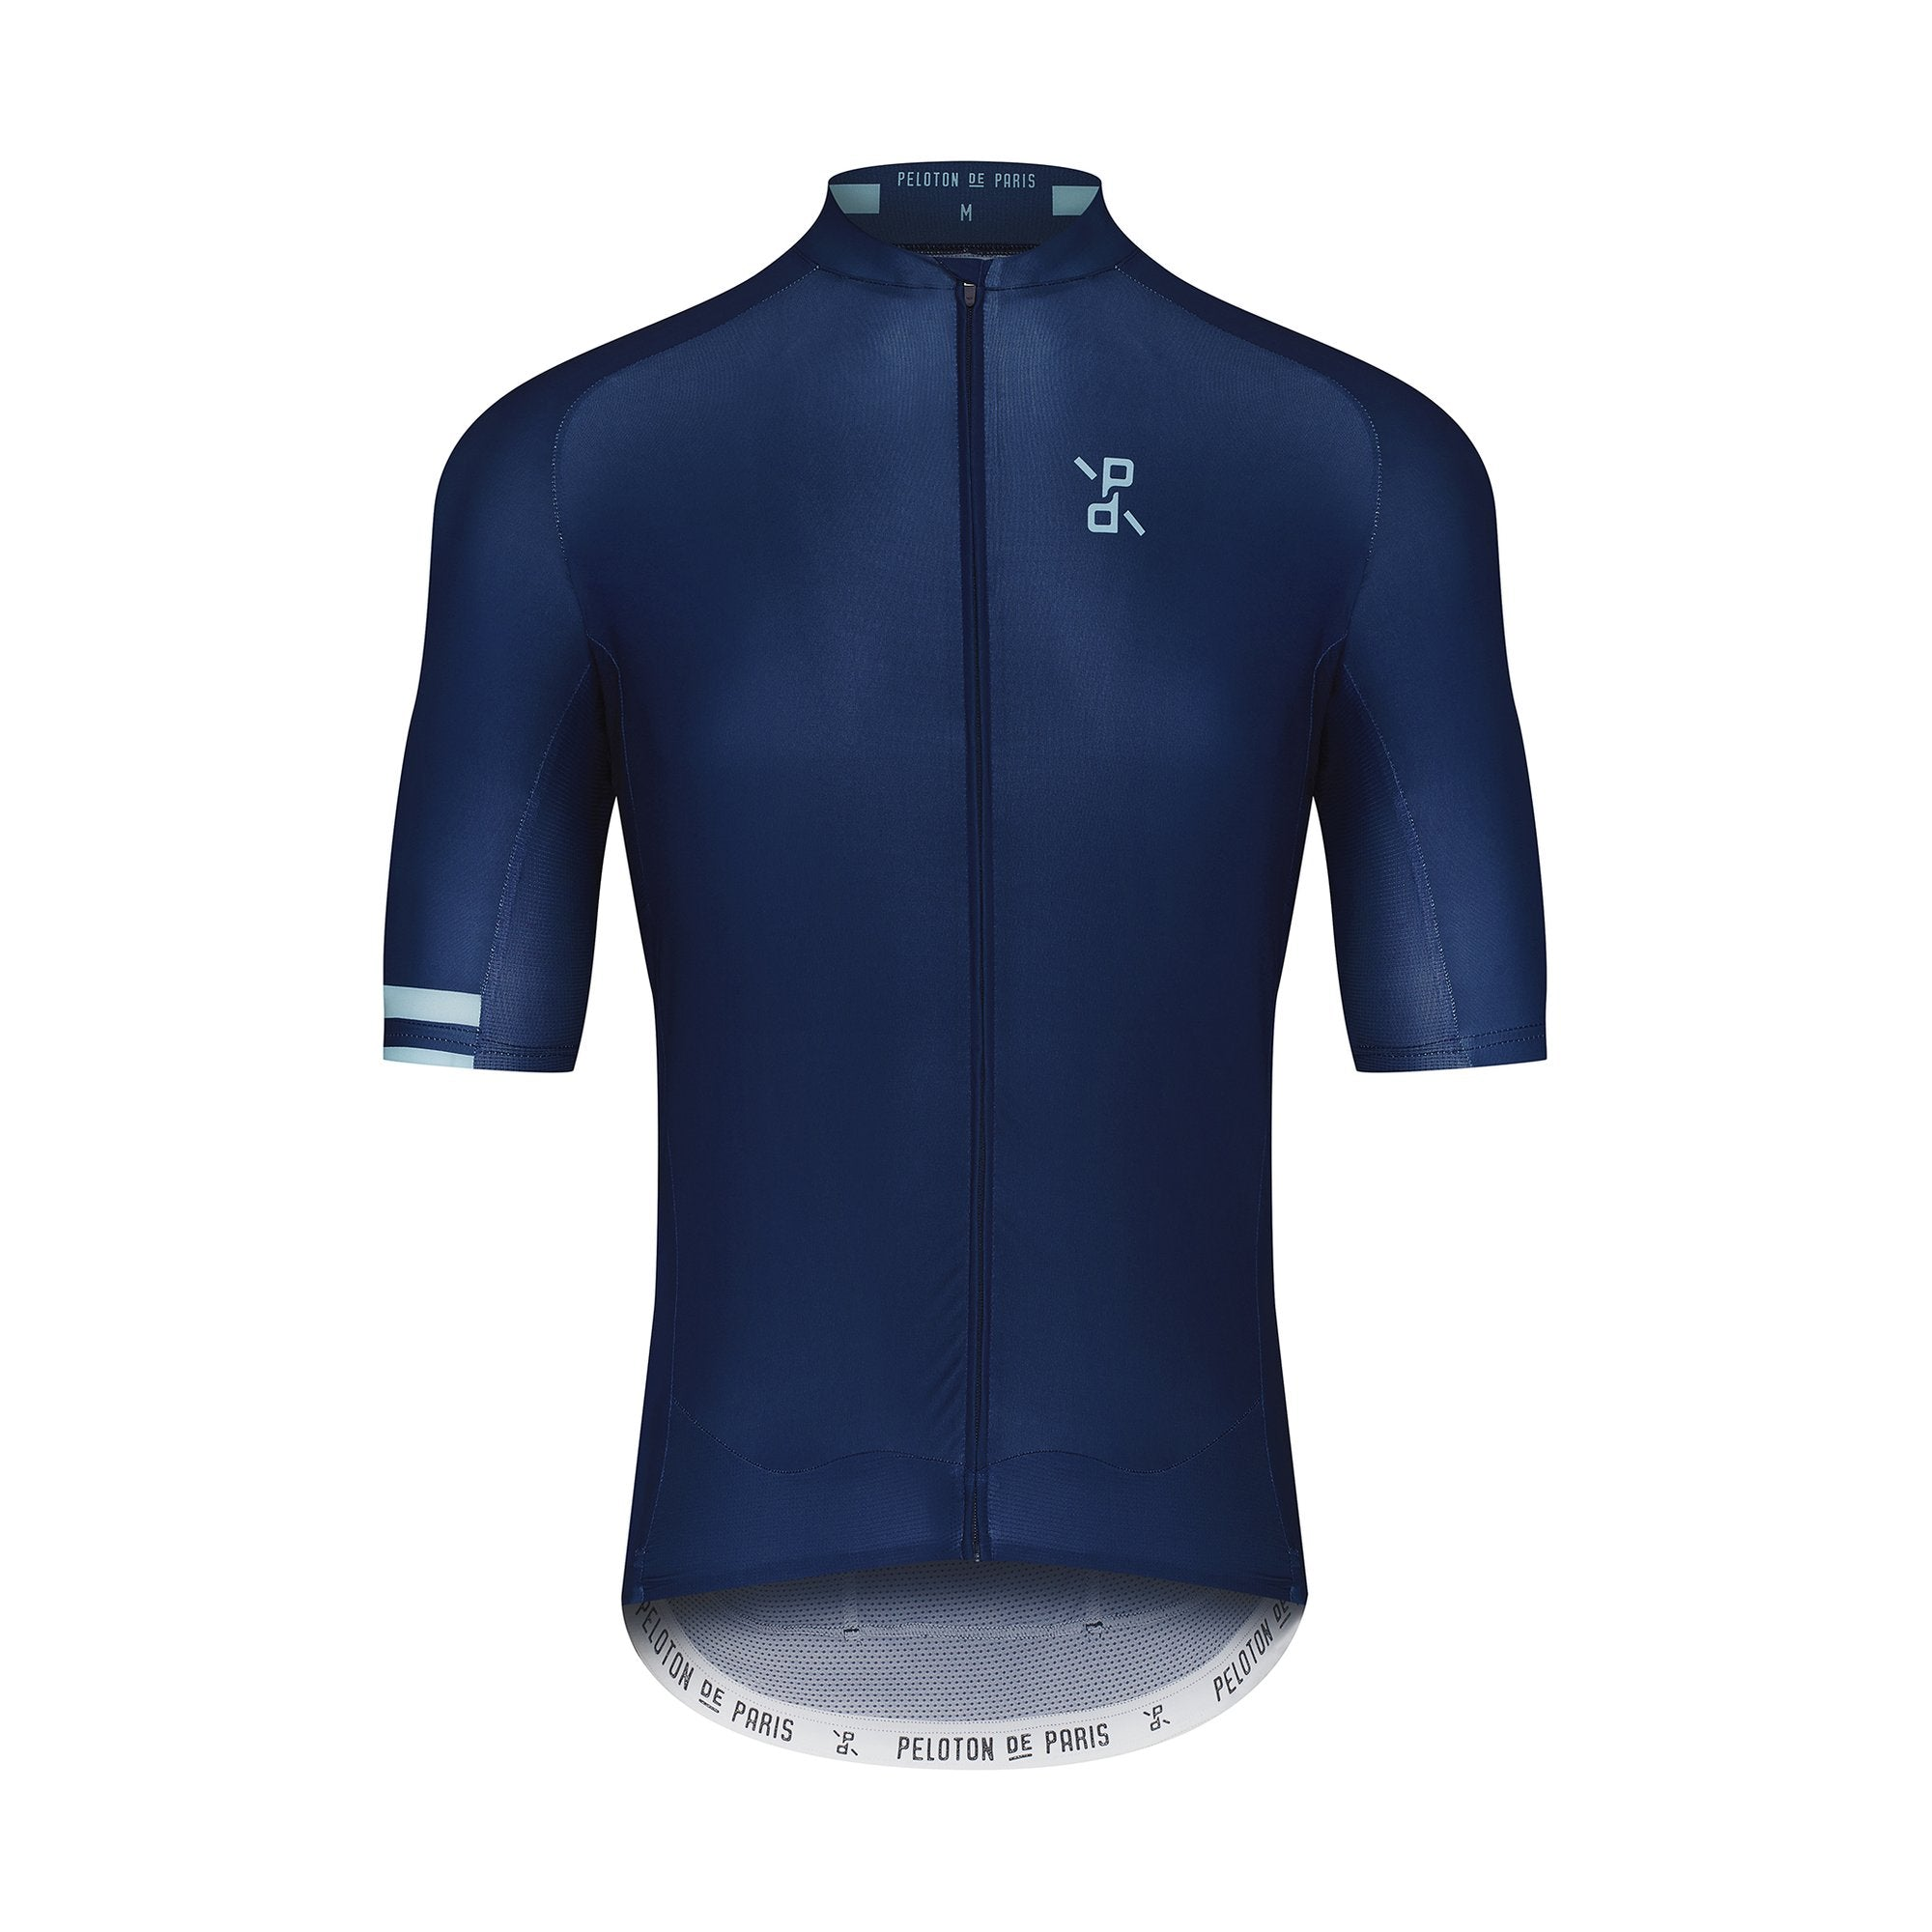 Peloton de Paris Navy Recon サイクルジャージ | CYCLISM